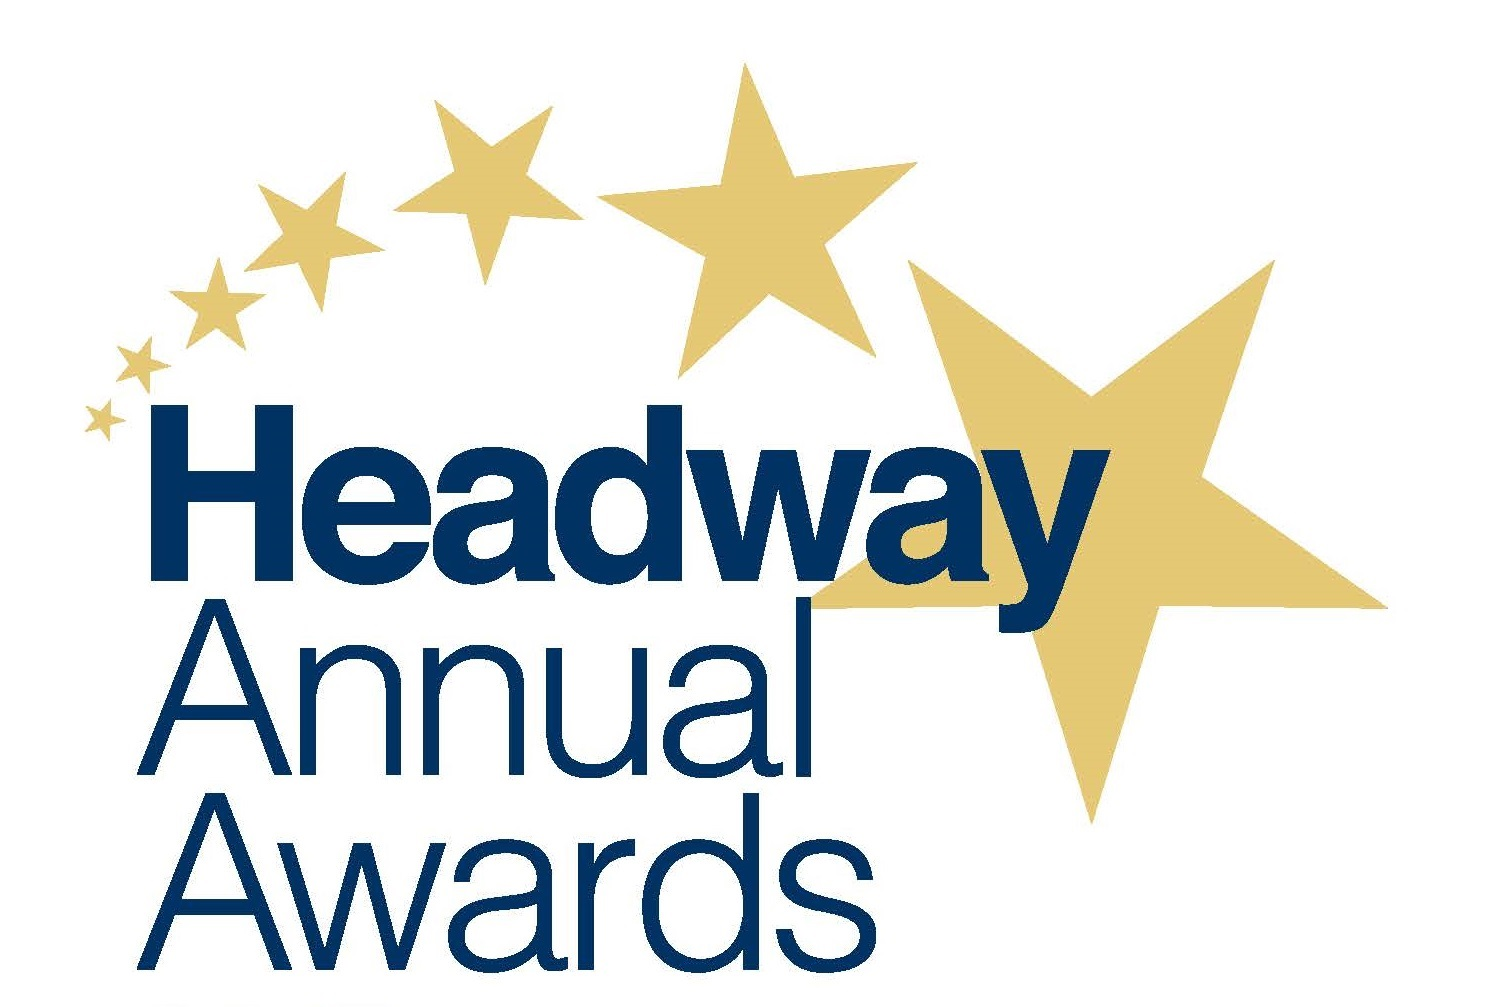 Headway Awards